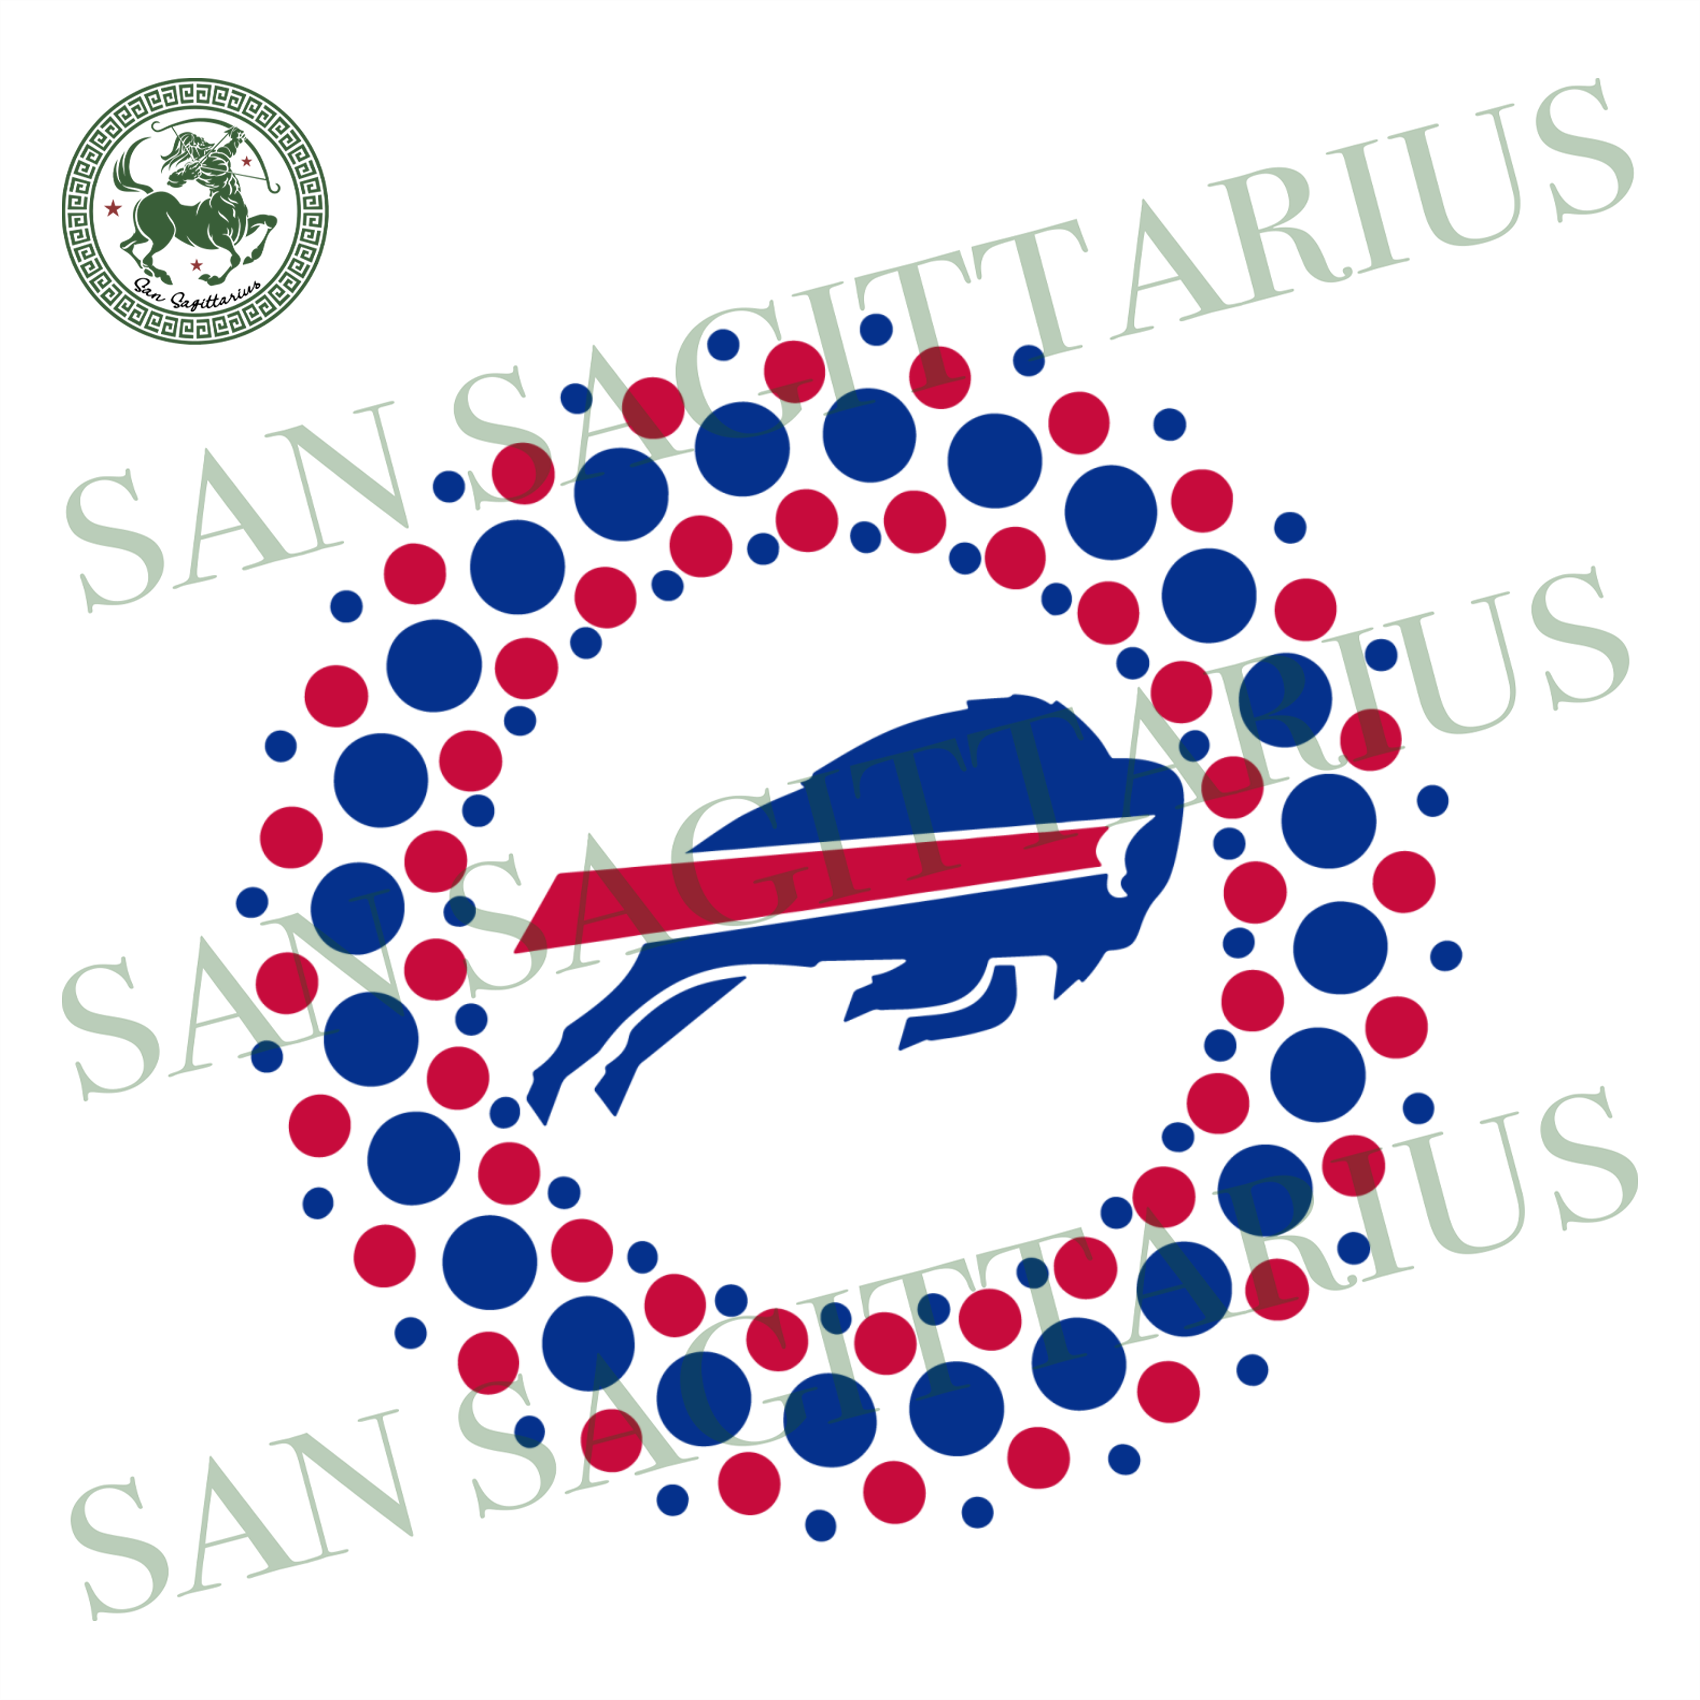 Buffalo Bills Rounded Logos Svg, Sport Svg, Football Svg, Buffalo Svg, Buffalo Bills Vector, Bill Lover Svg, Buffalo Football Est 1960 Svg, Nfl Bills Logo Svg, Football League Svg, Buffalo Fo